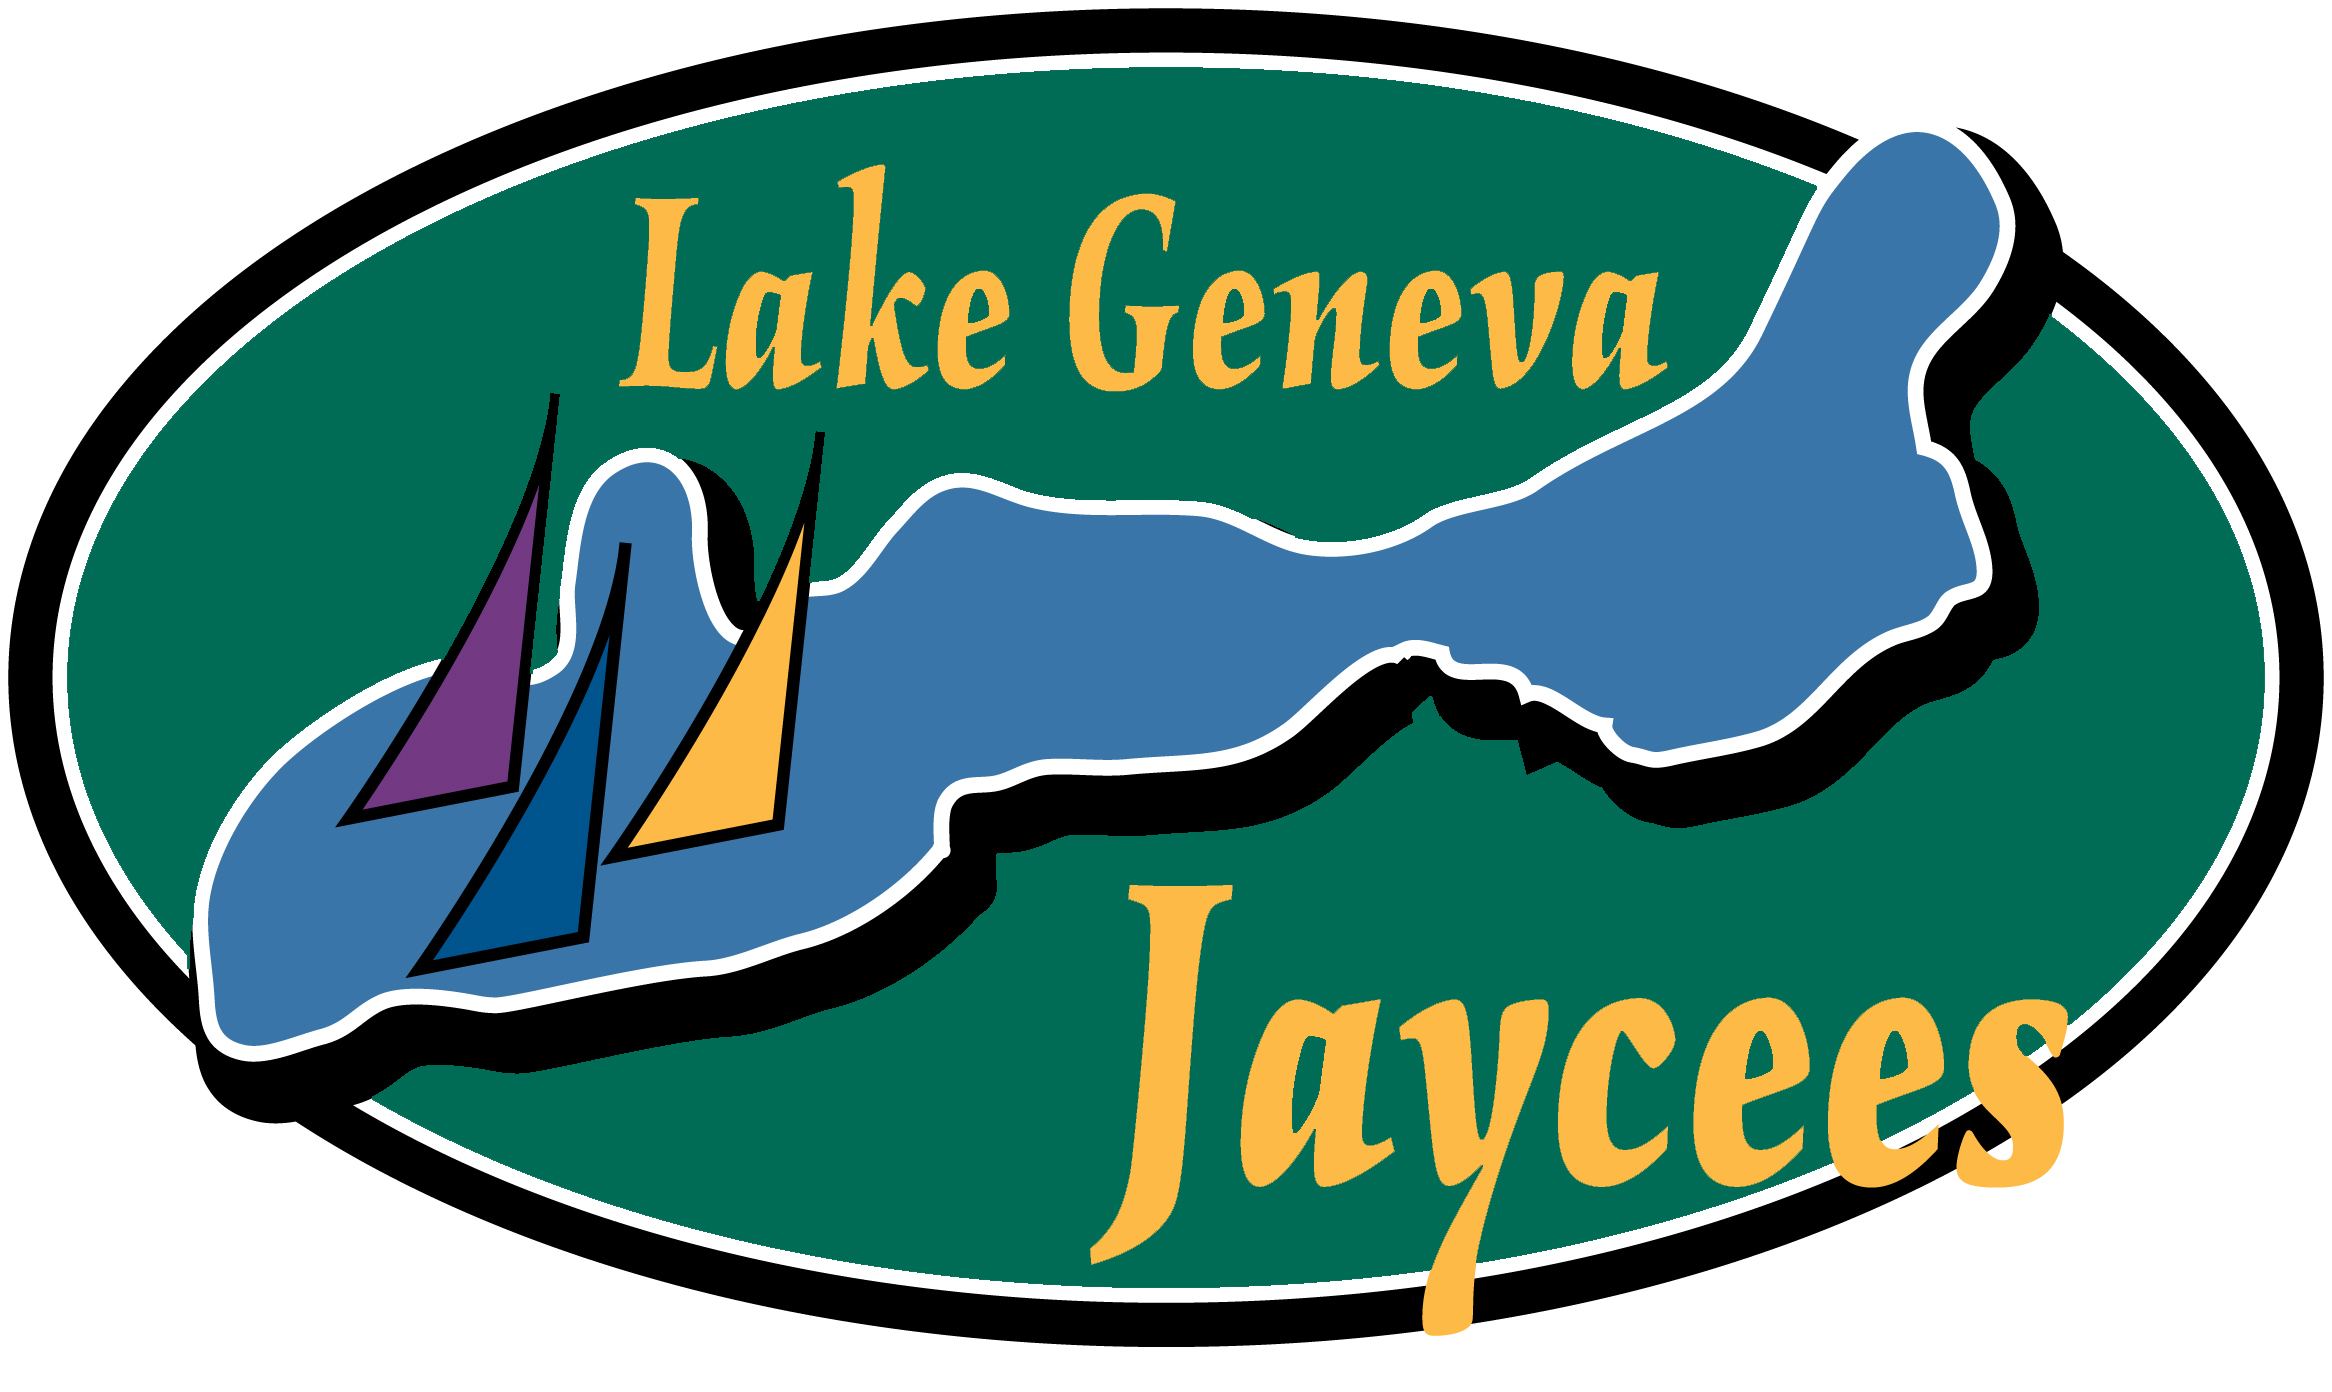 Board Meeting - Lake Geneva Jaycees